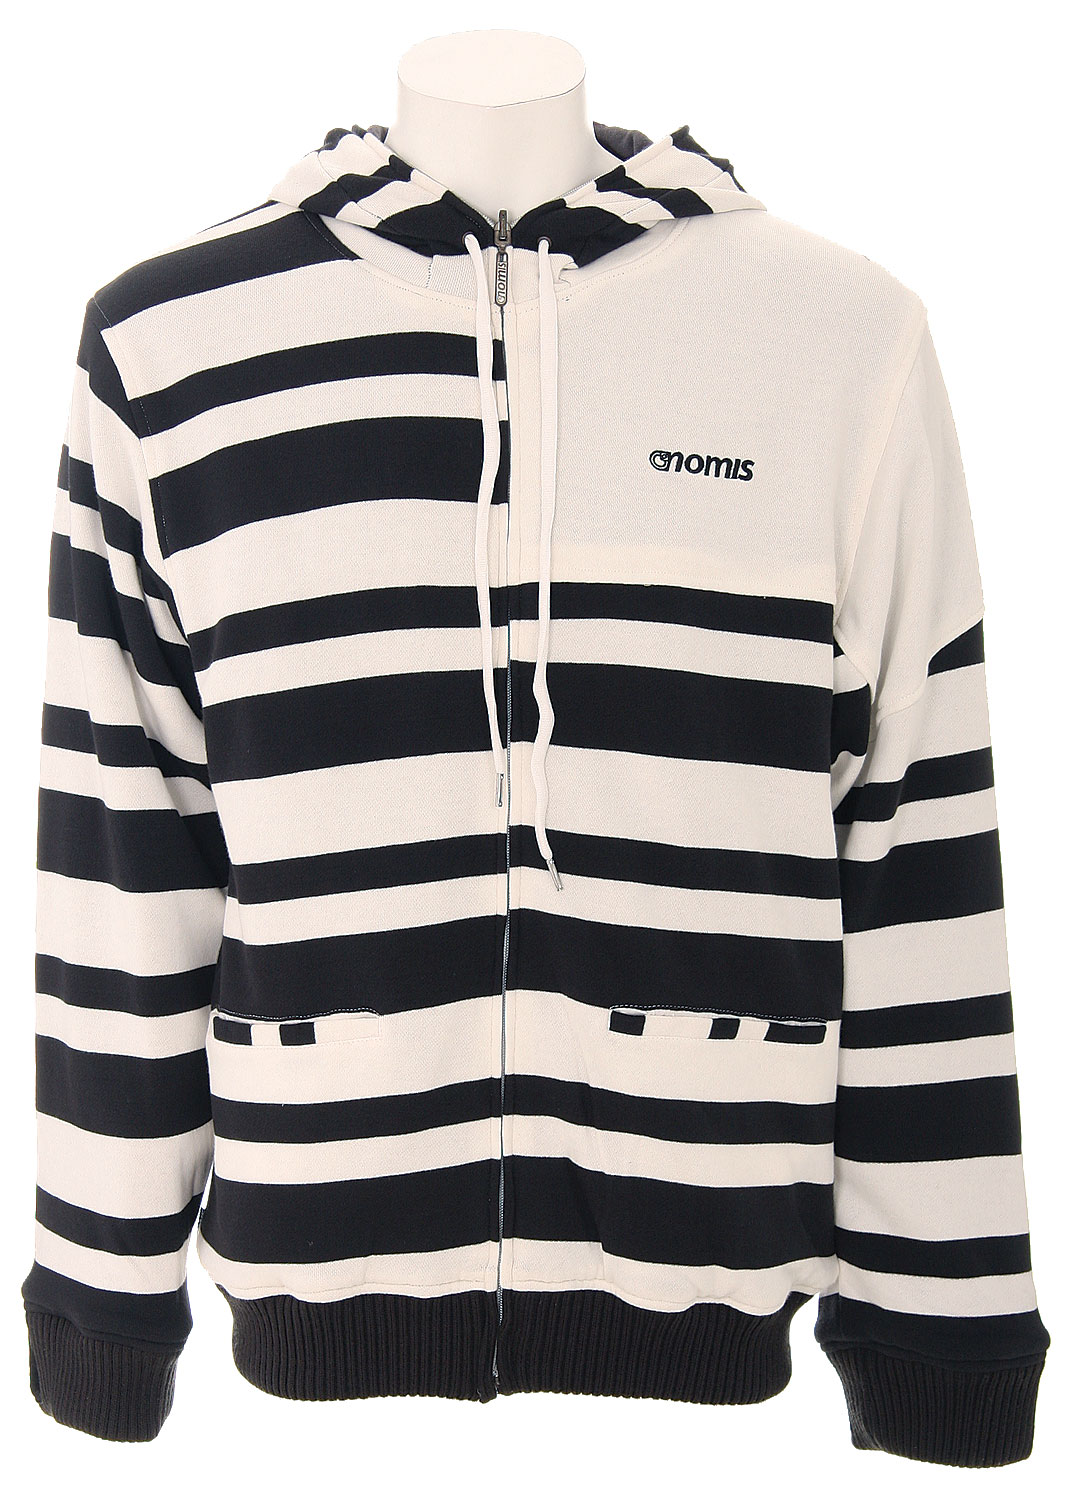 The Nomis Simom Referee Zip Hoodie - 80/20 Cotton / Poly French Terry / Reversible / Zips Half Way / 2 Color Knitted Stripe Pattern / Custom Zip Pull - Drawstring / Left Chest Embroidery - $49.95